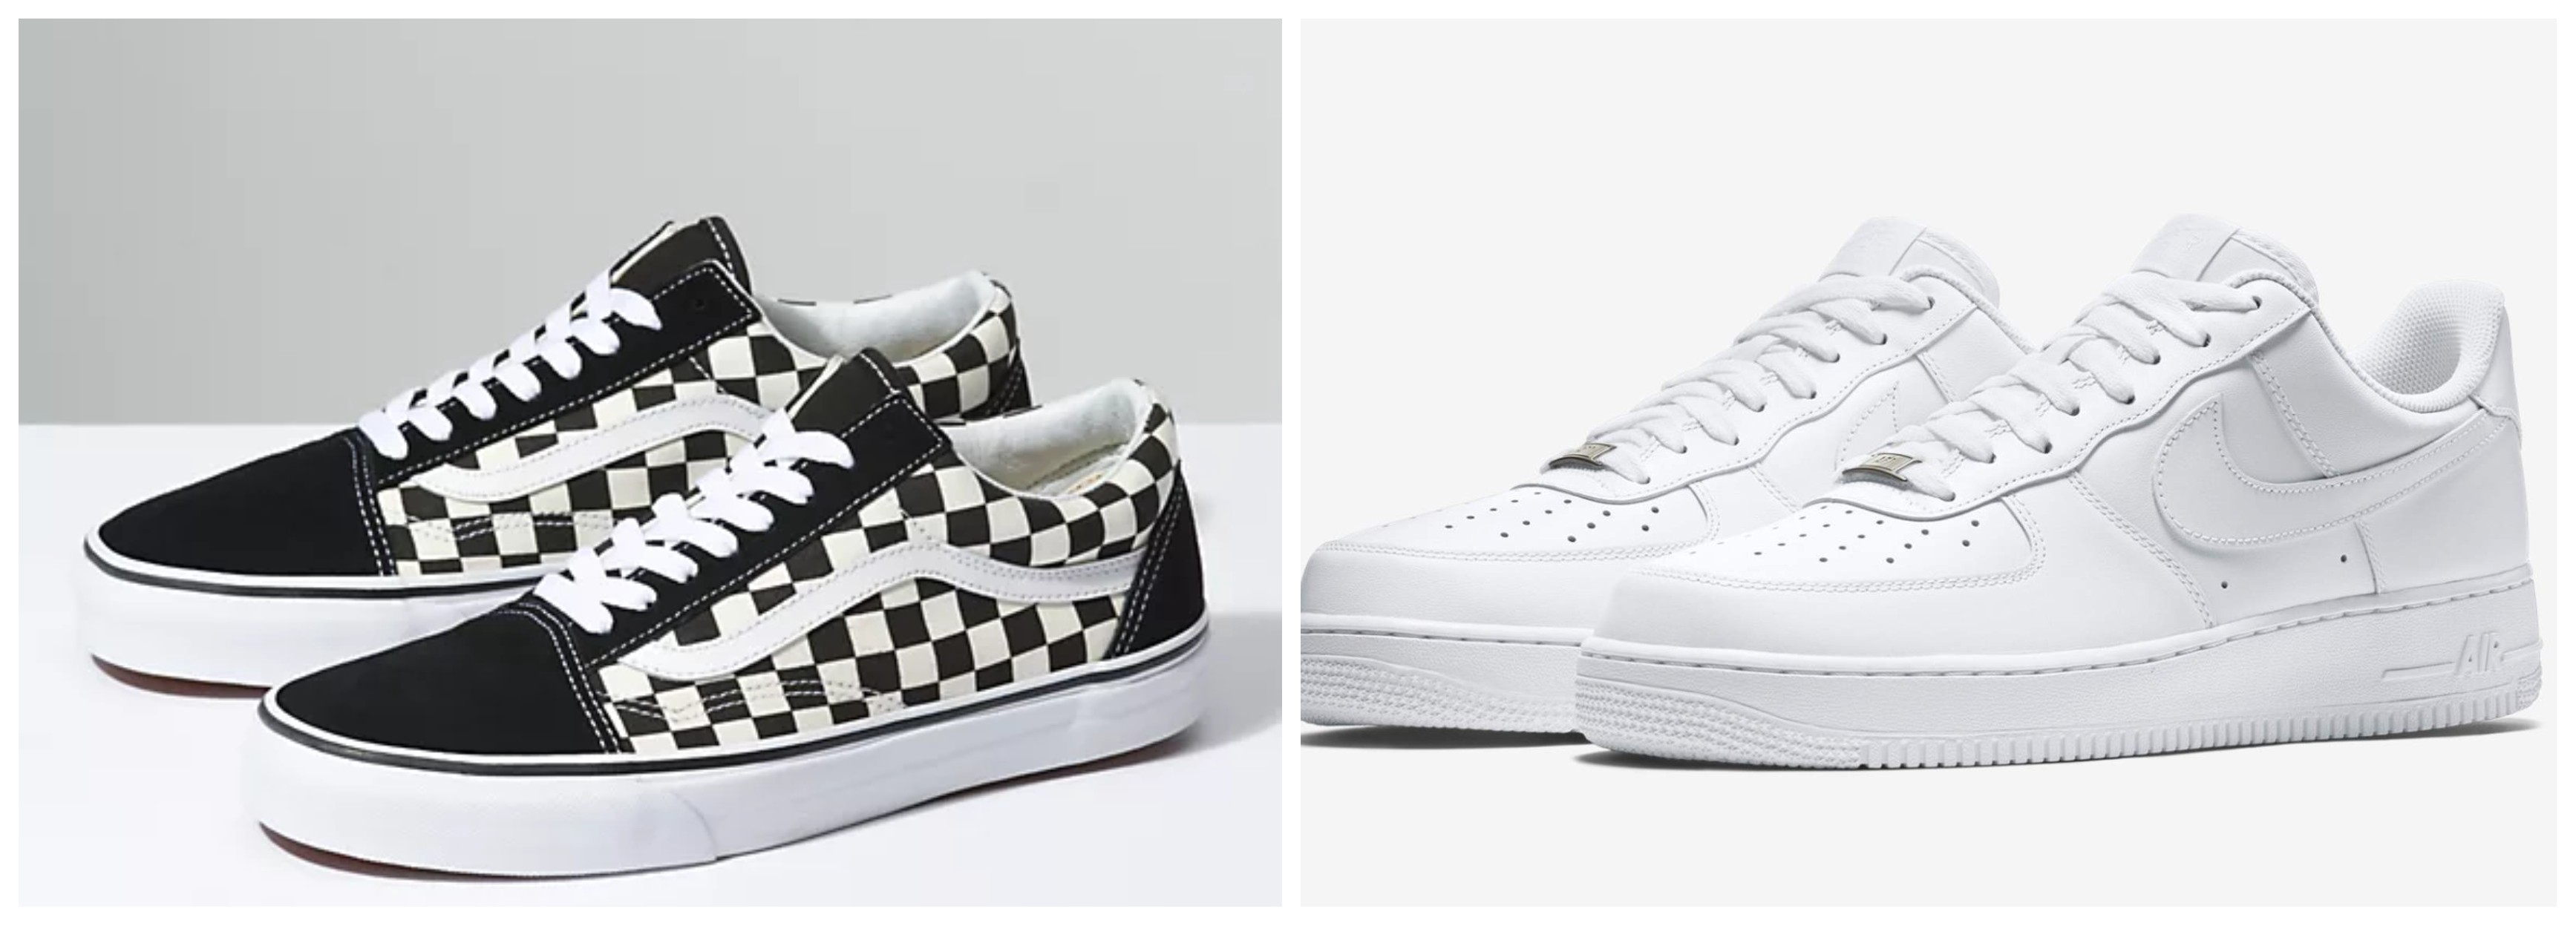 Vans or Air Force 1's?. Both shoes are